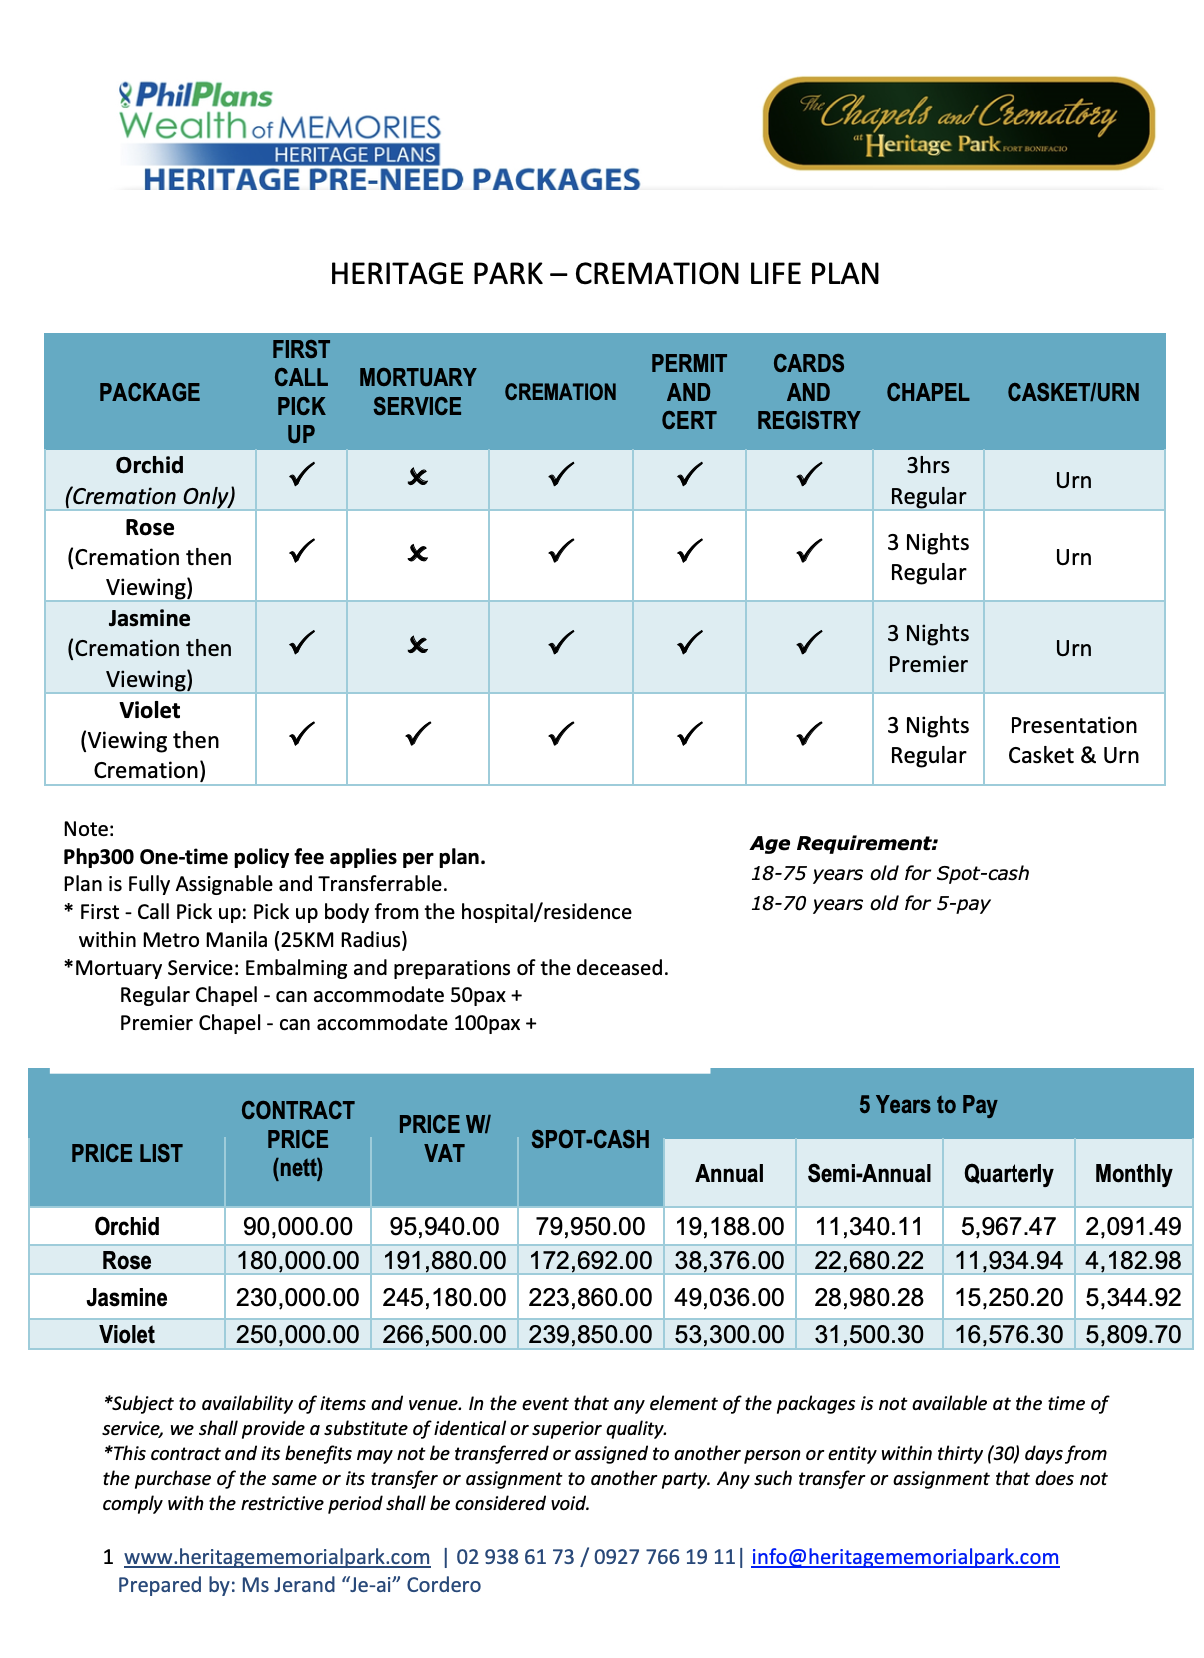 The Heritage Park pre-need cremation plans